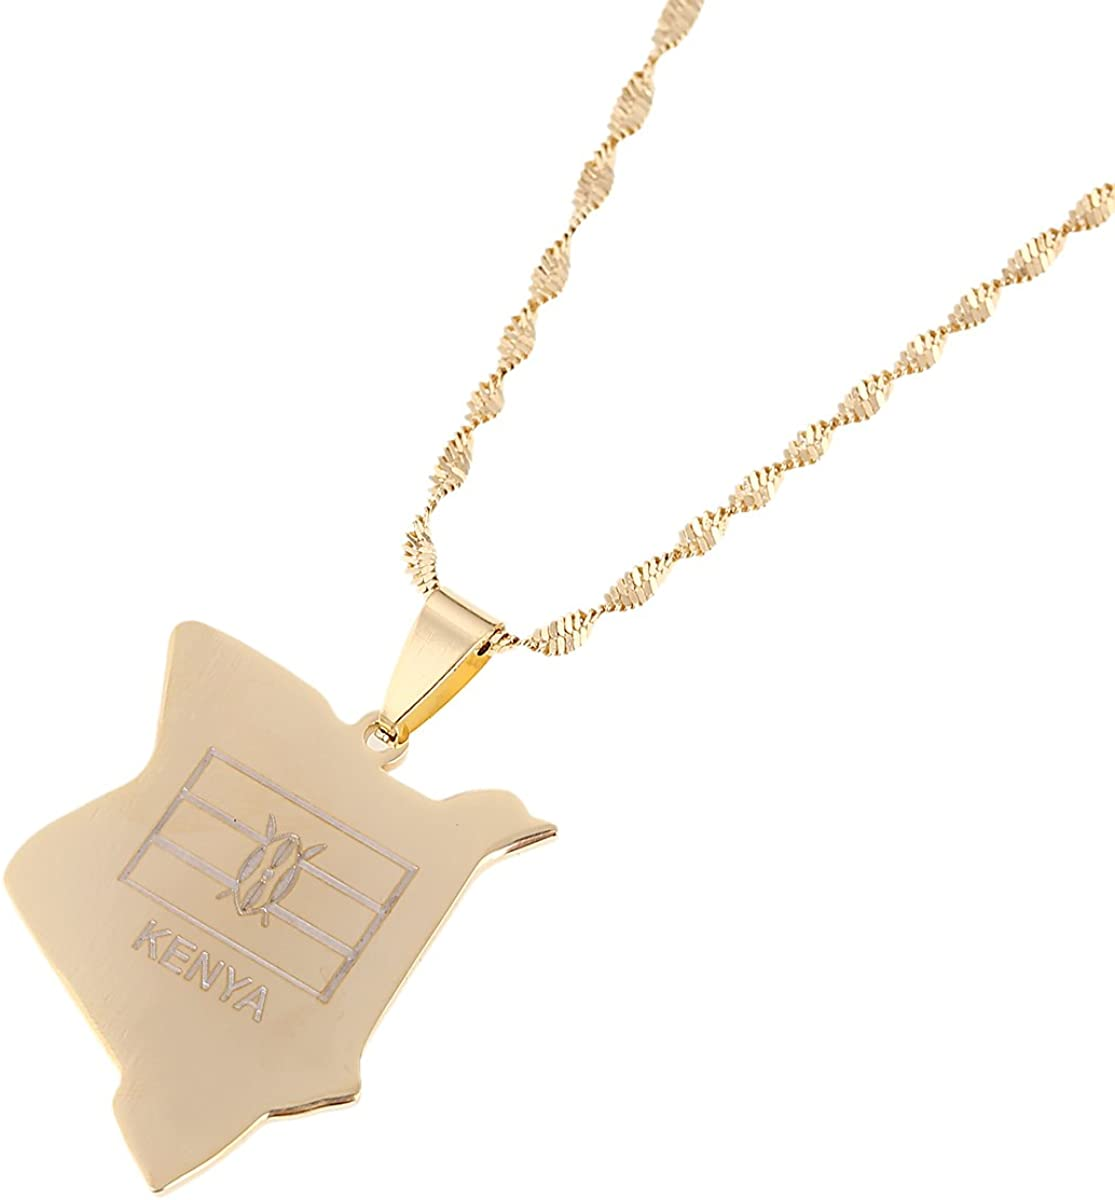 Kenya Map Pendant Necklaces Jewellery Gold African Country Map Kenyans Jewelry